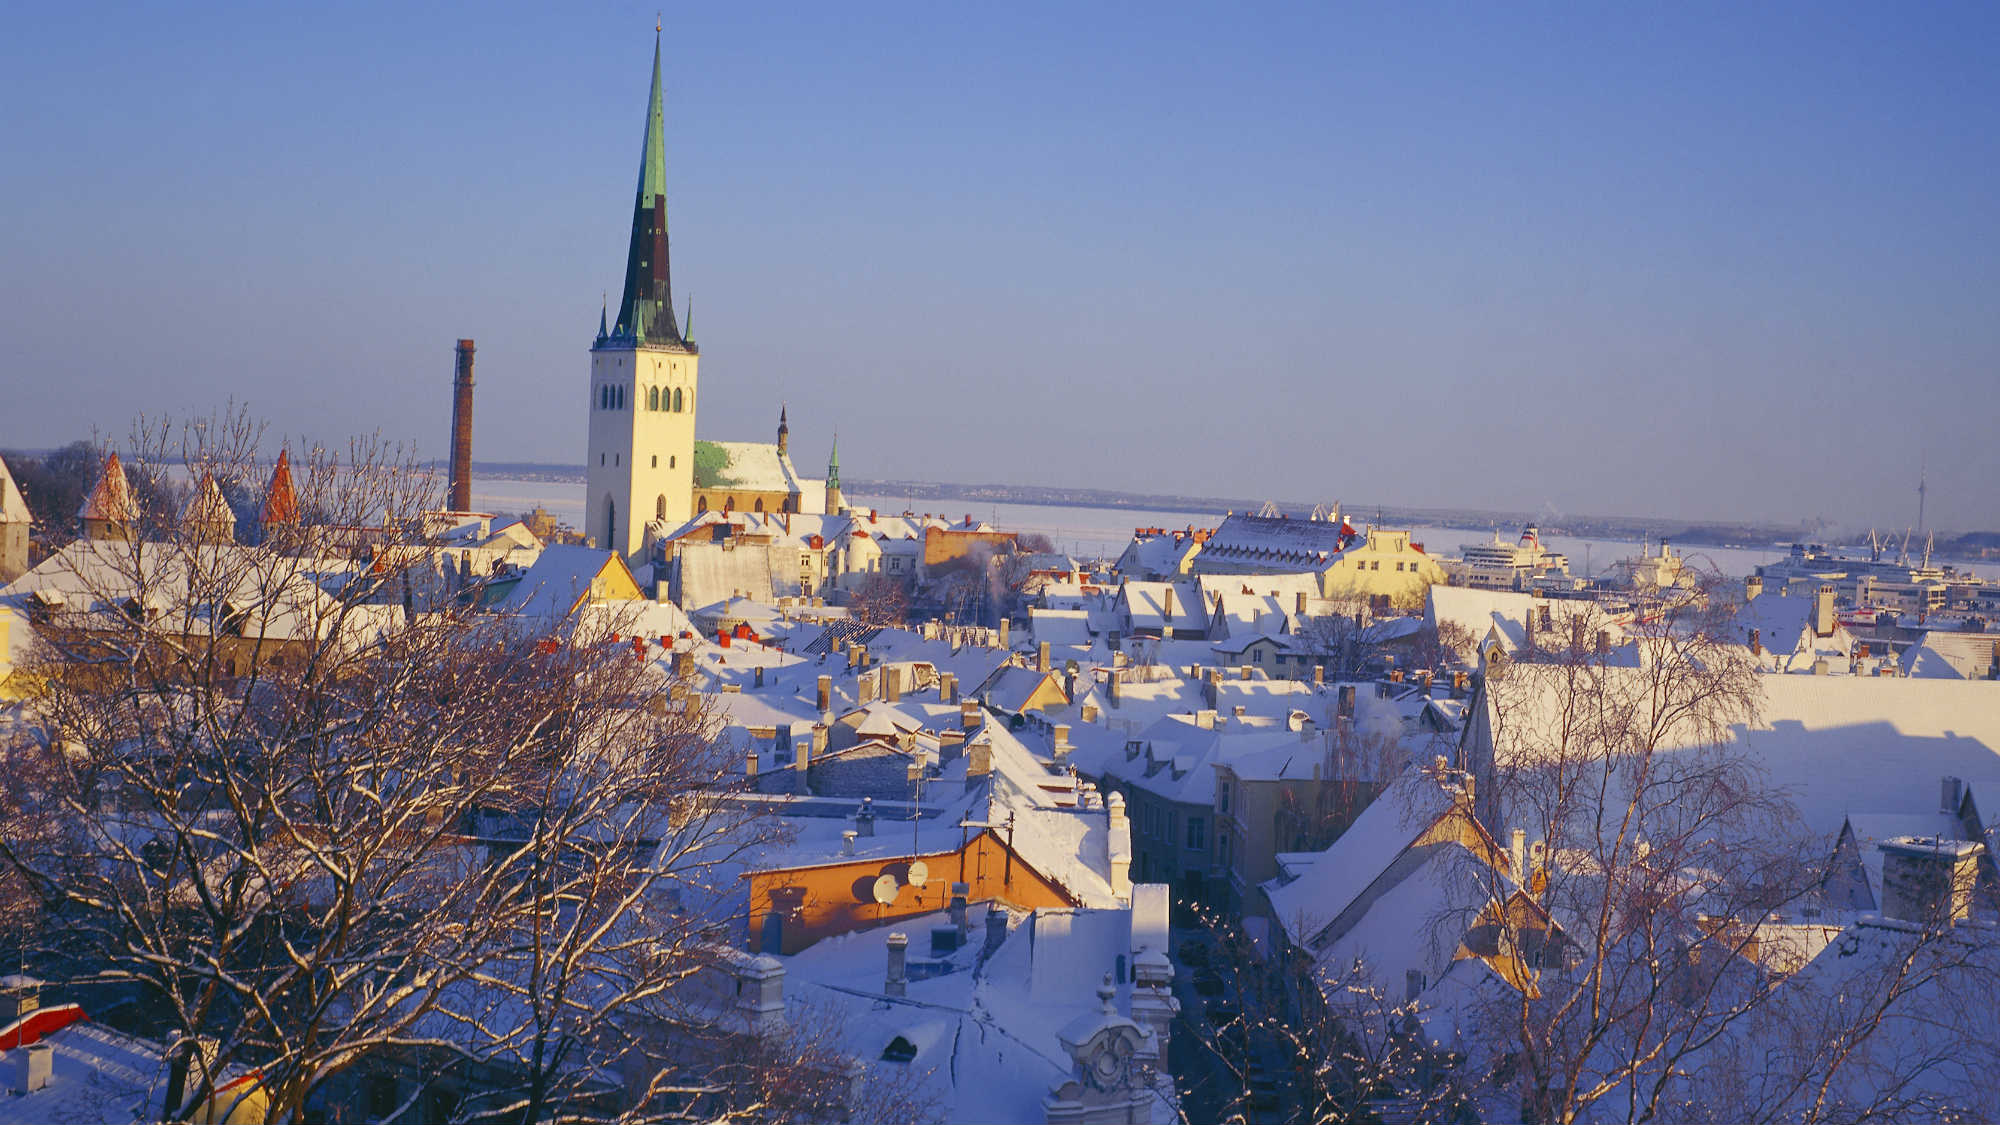 View to the magical Tallinn Old Town. Picture by Ain Avik